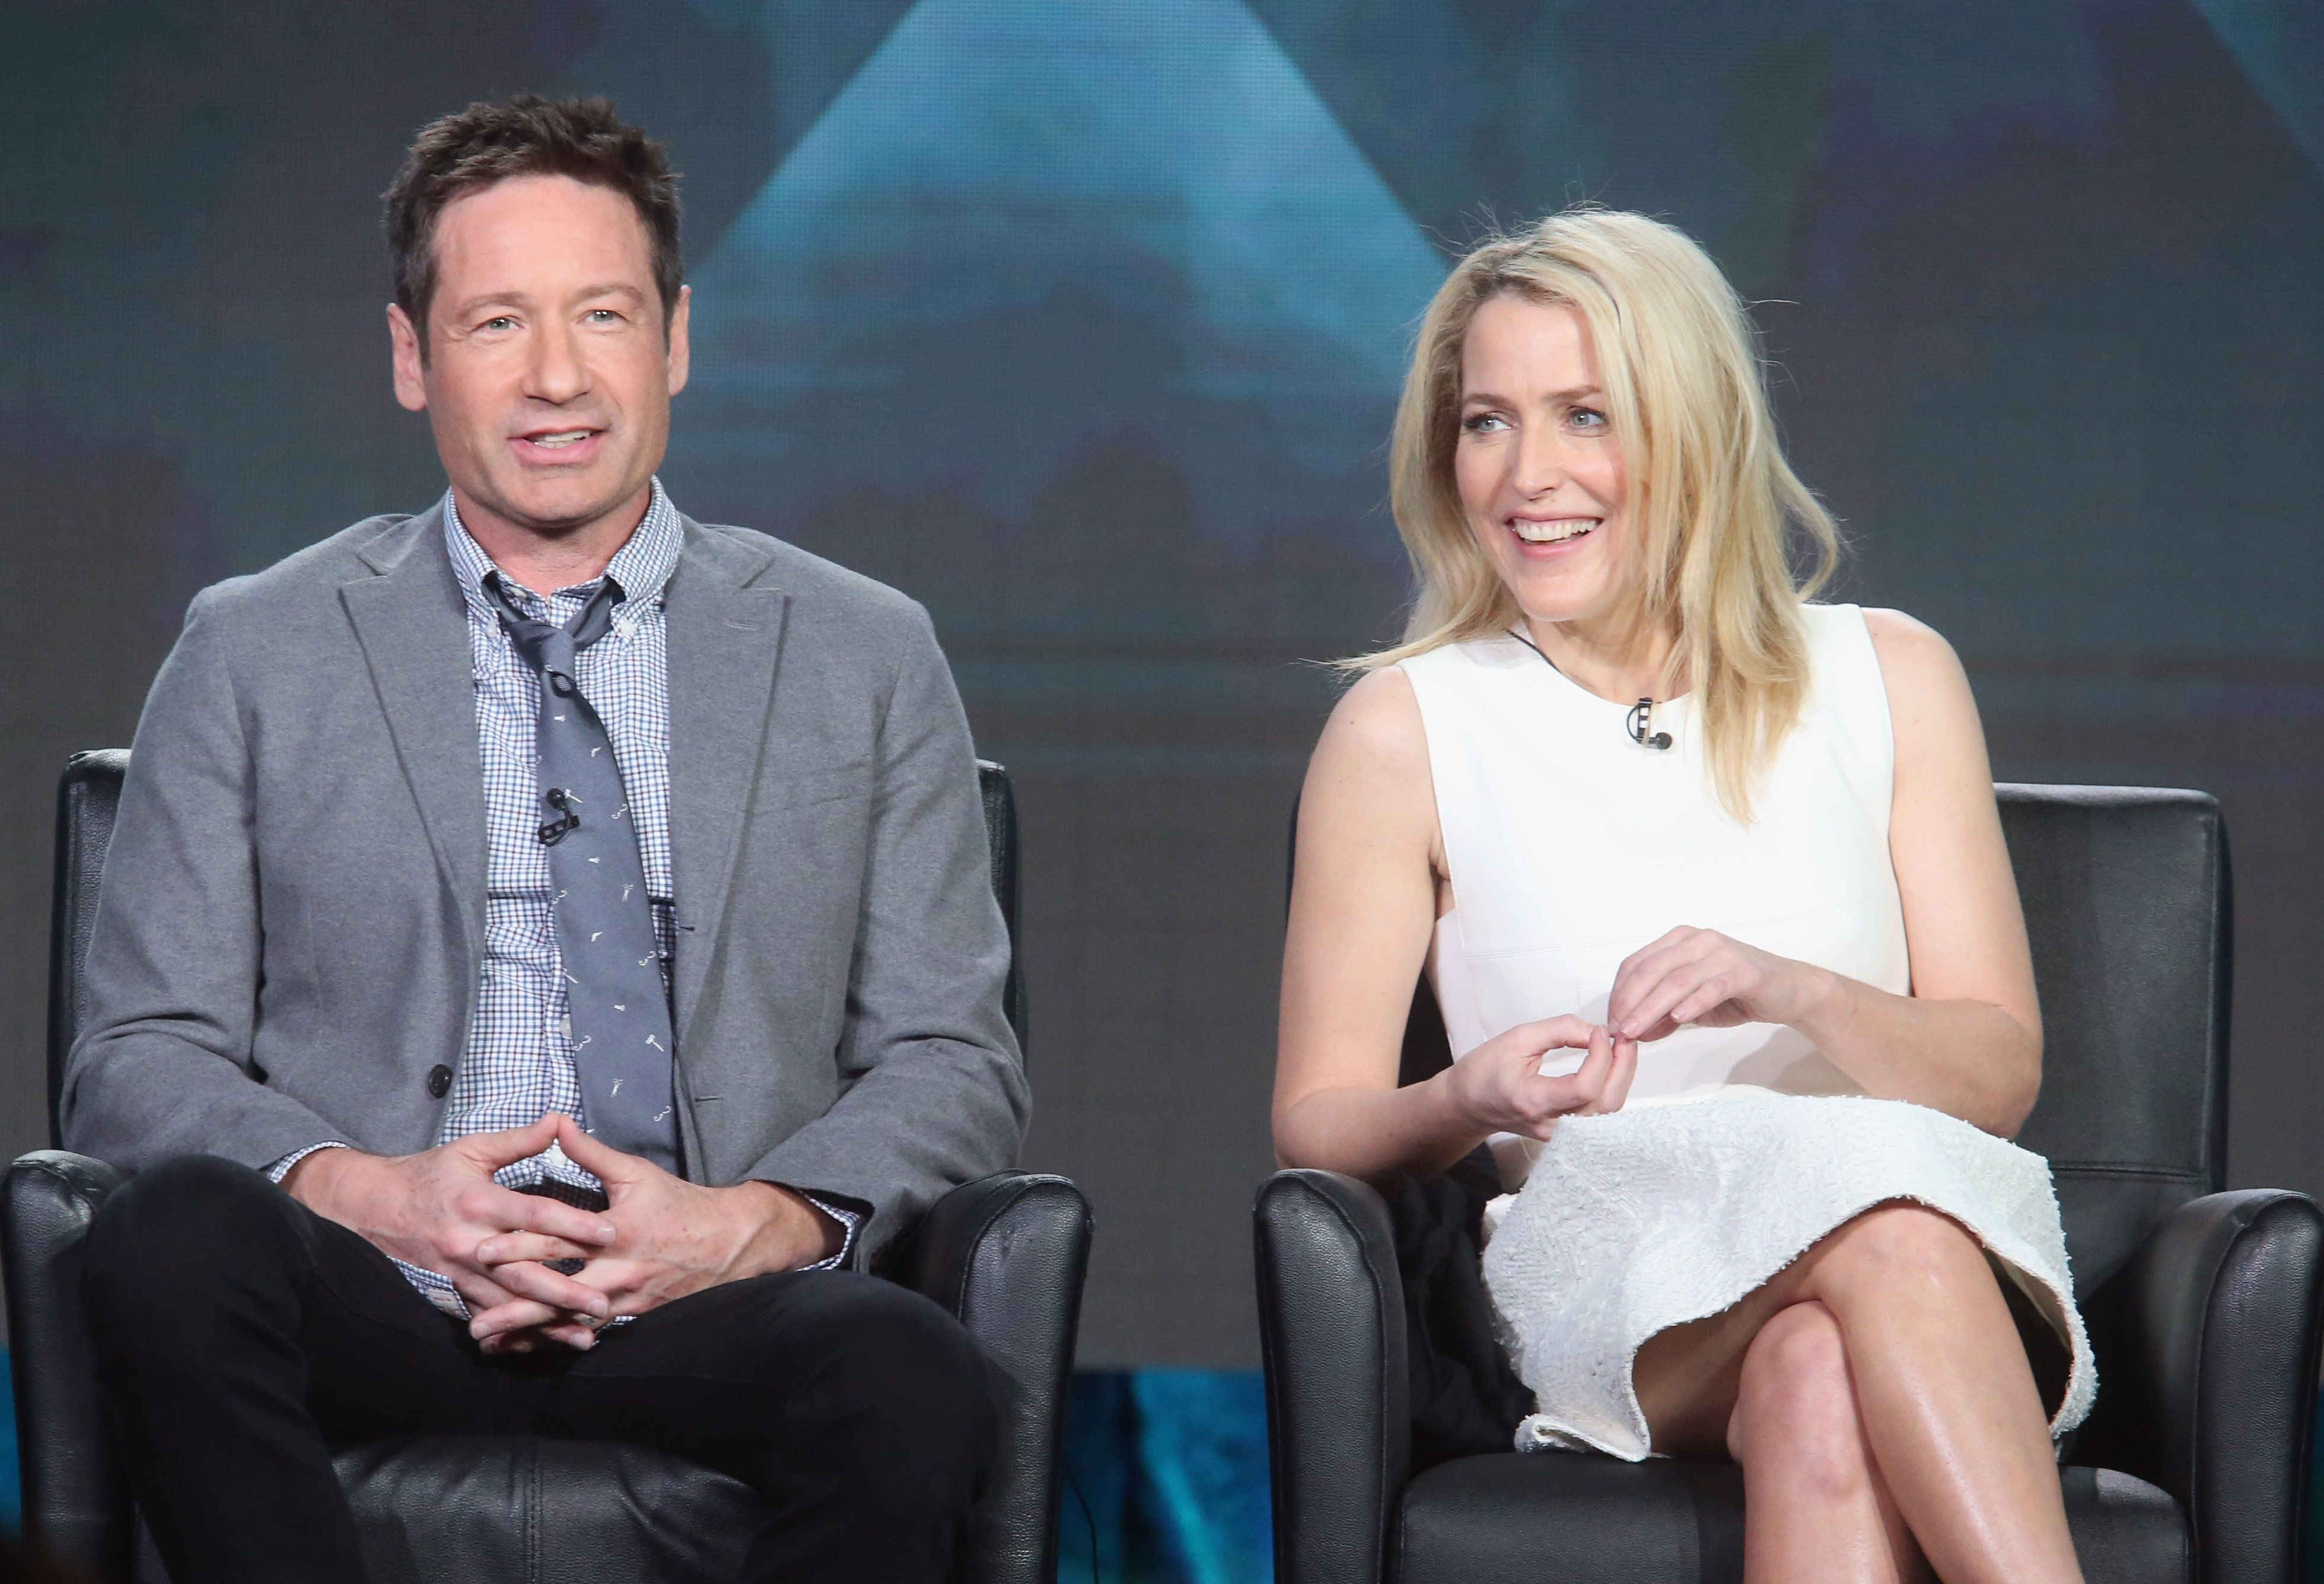 PASADENA, CA - JANUARY 15:  Actors David Duchovny and Gillian Anderson speak onstage during 'The X-Files' panel discussion at the FOX portion of the 2015 Winter TCA Tour at the Langham Huntington Hotel on January 15, 2016 in Pasadena, California  (Photo by Frederick M. Brown/Getty Images)